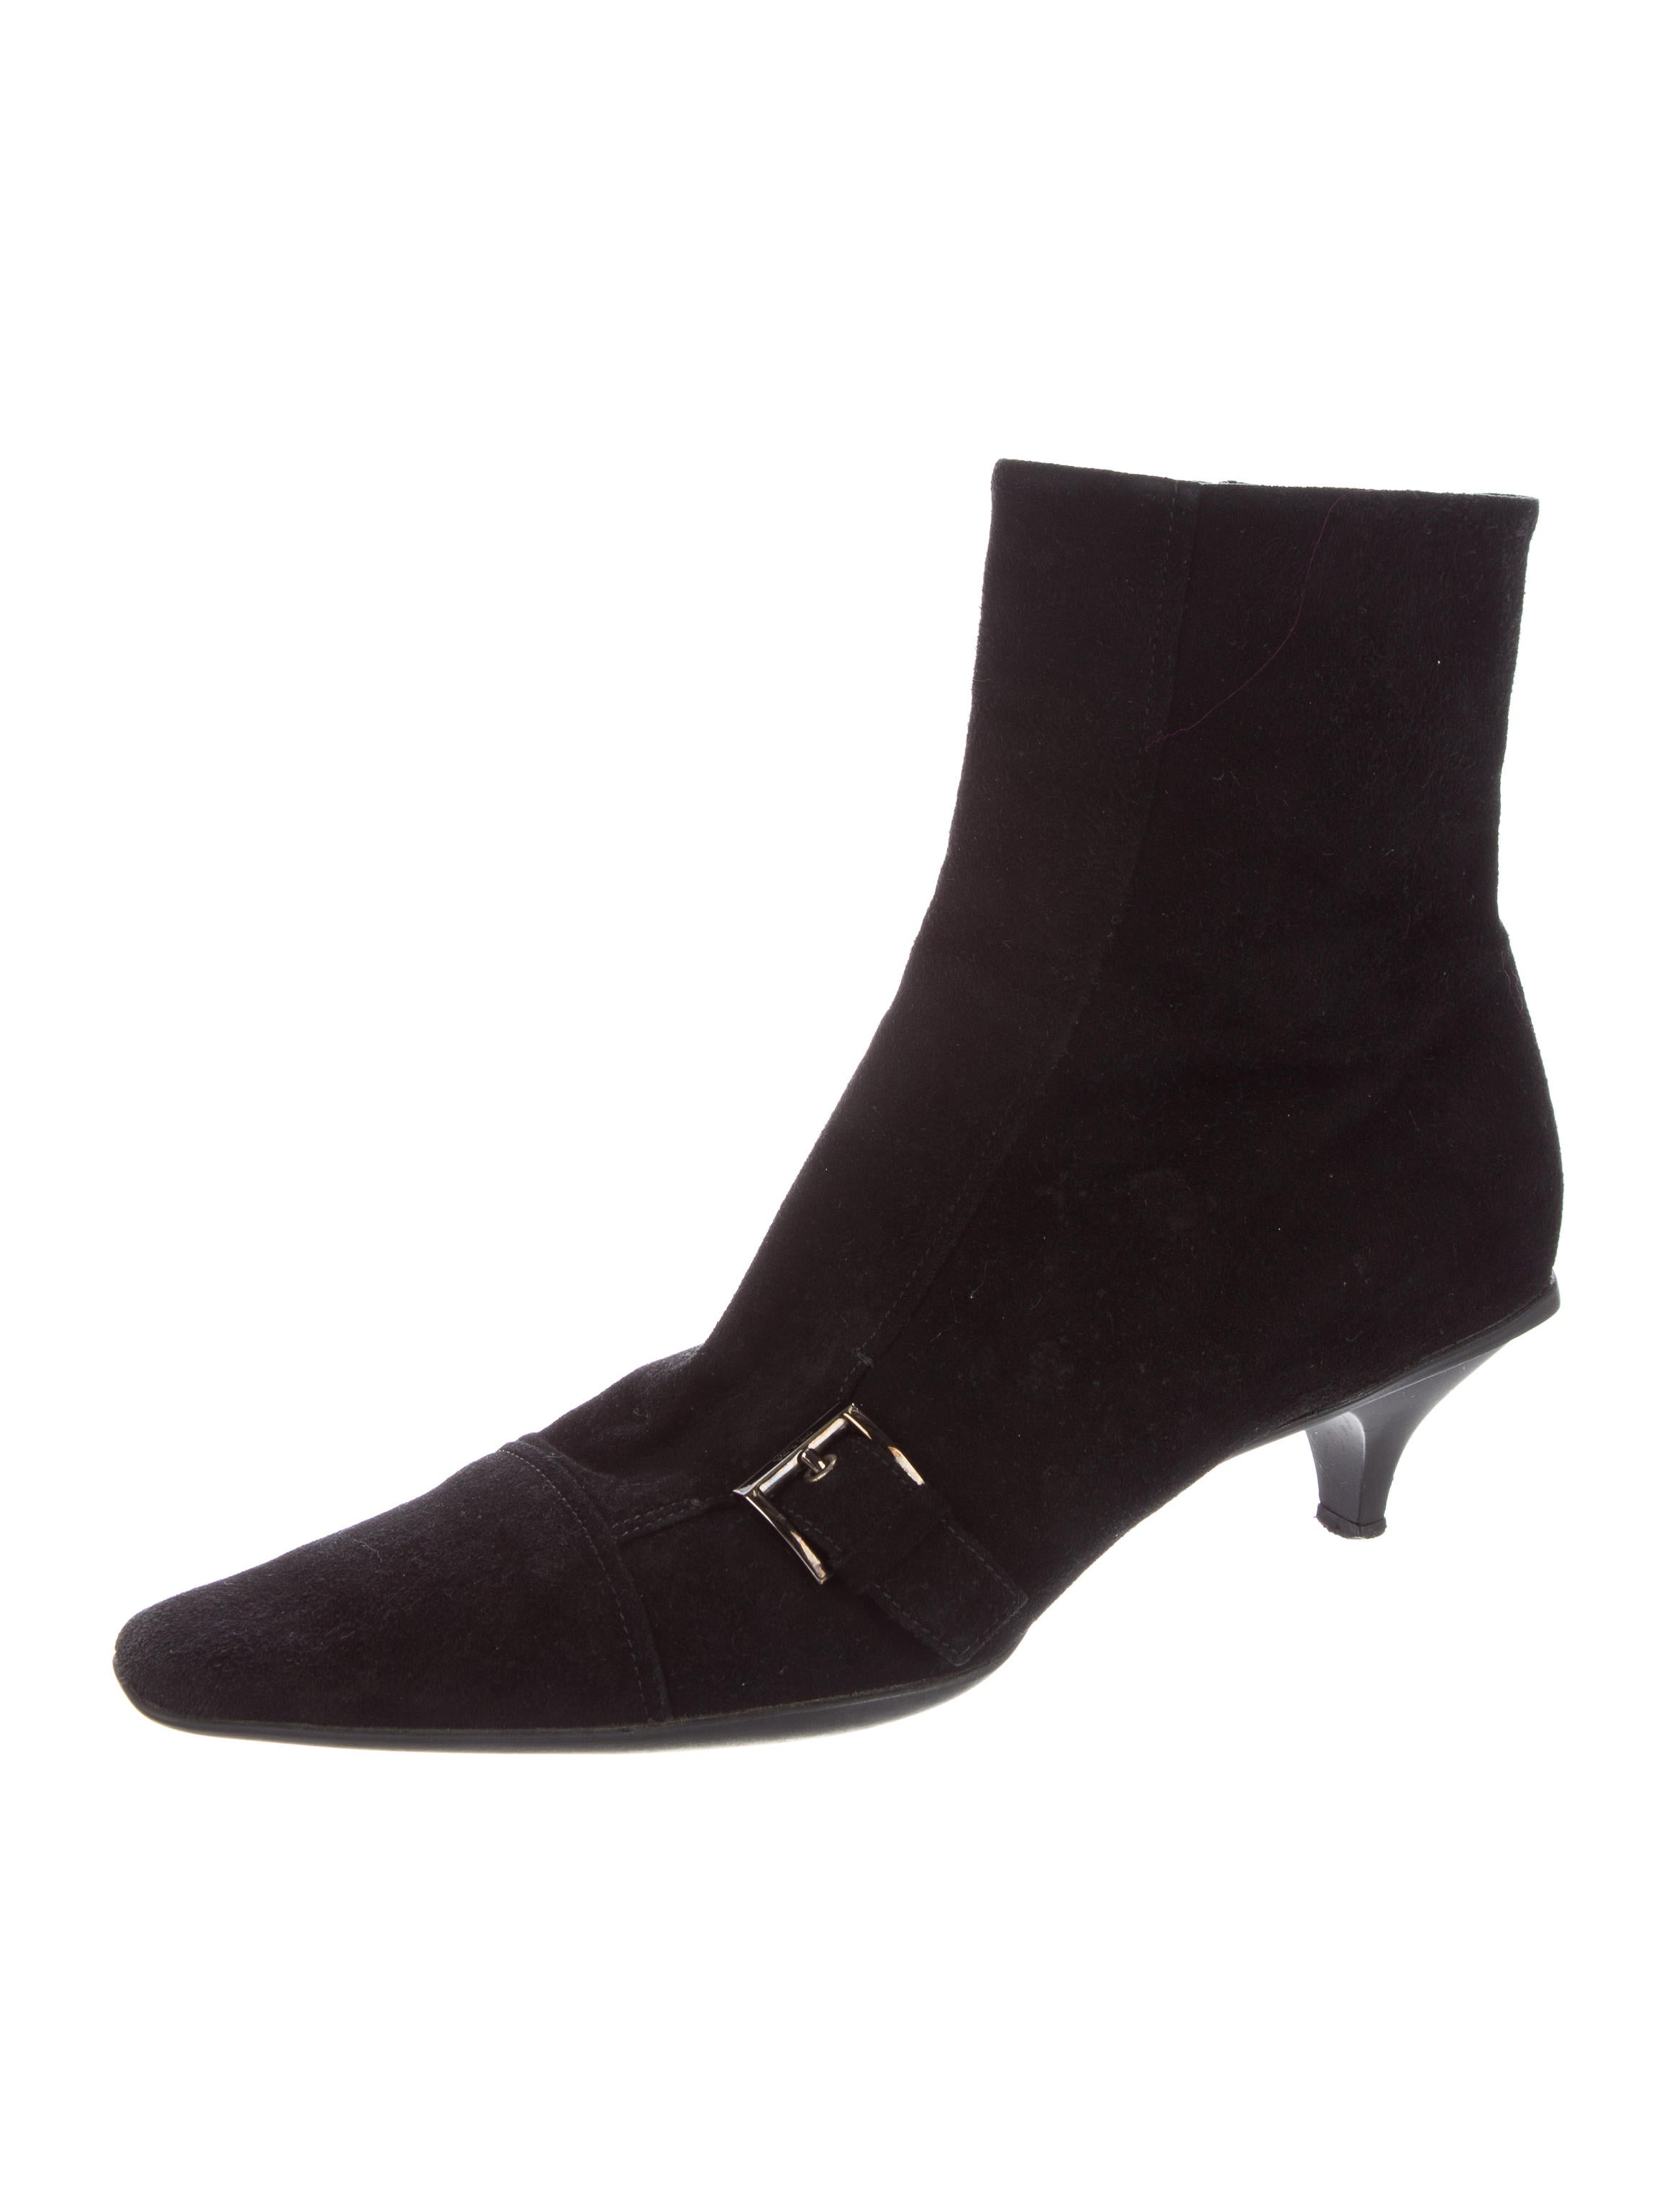 prada buckle embellished suede ankle boots shoes